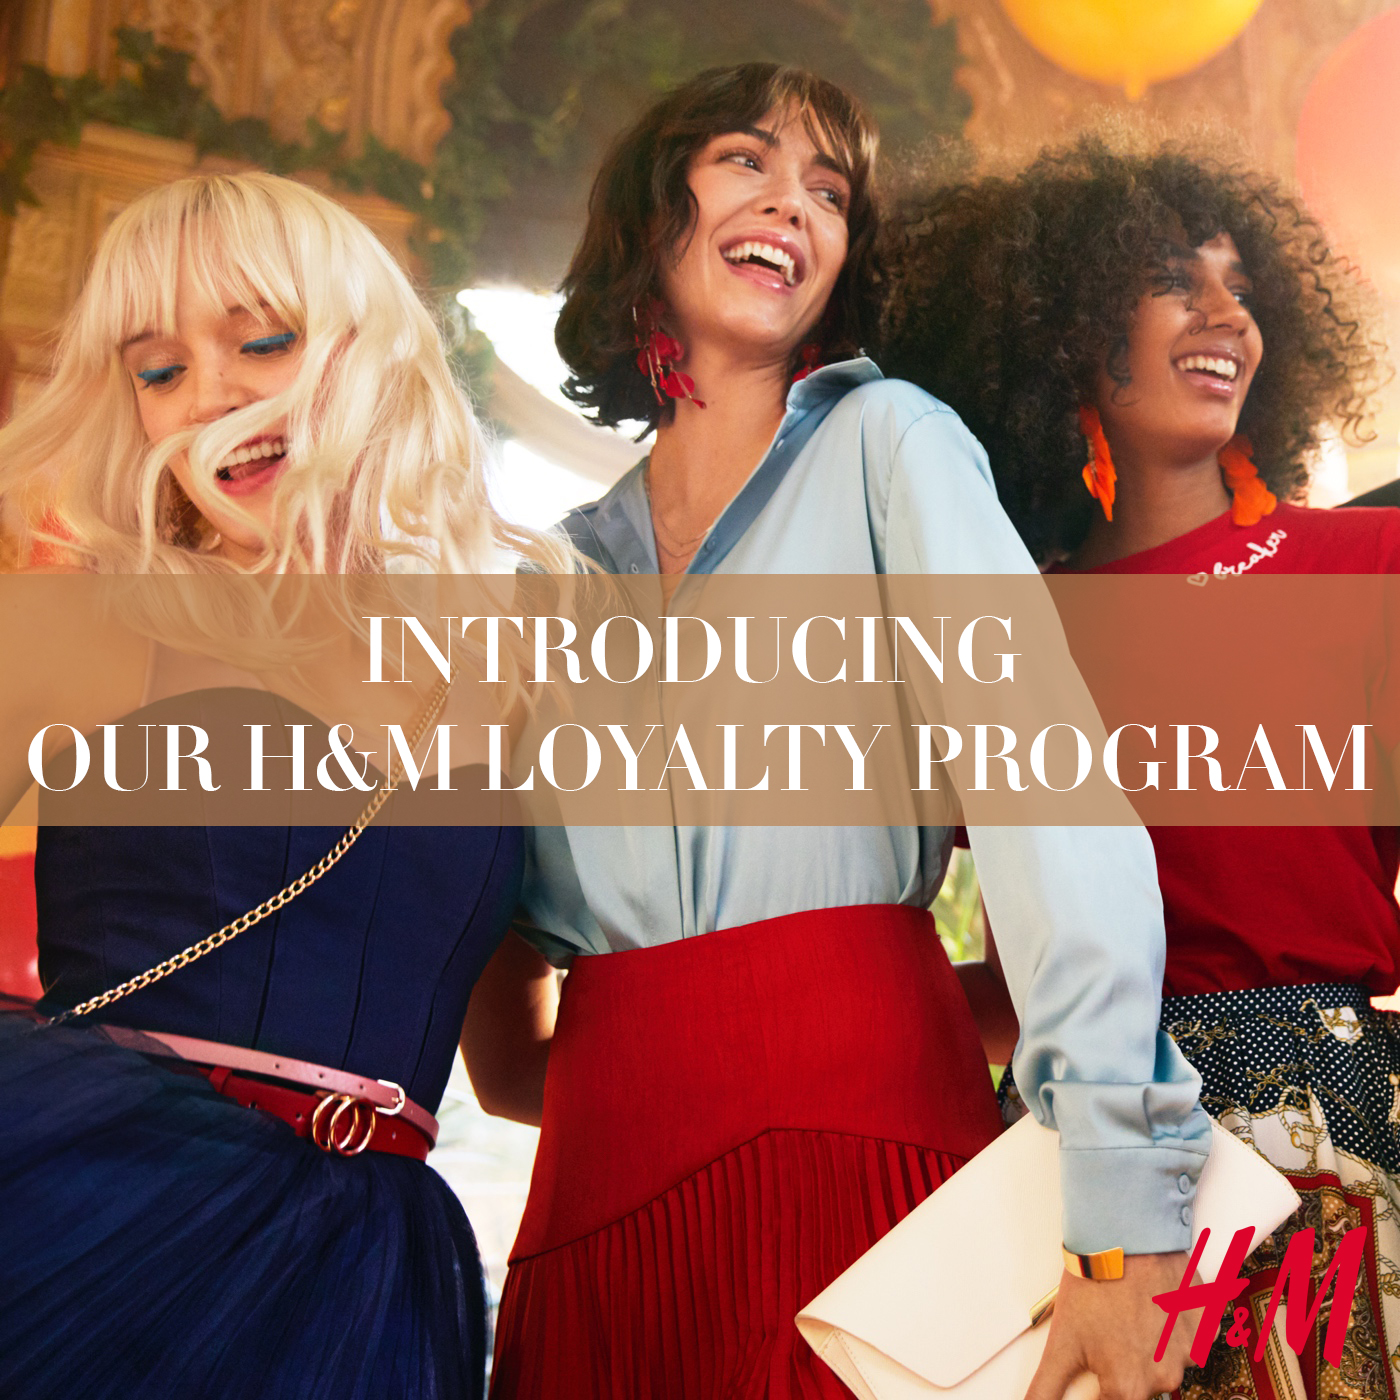 Introducing the H&M Loyalty Program